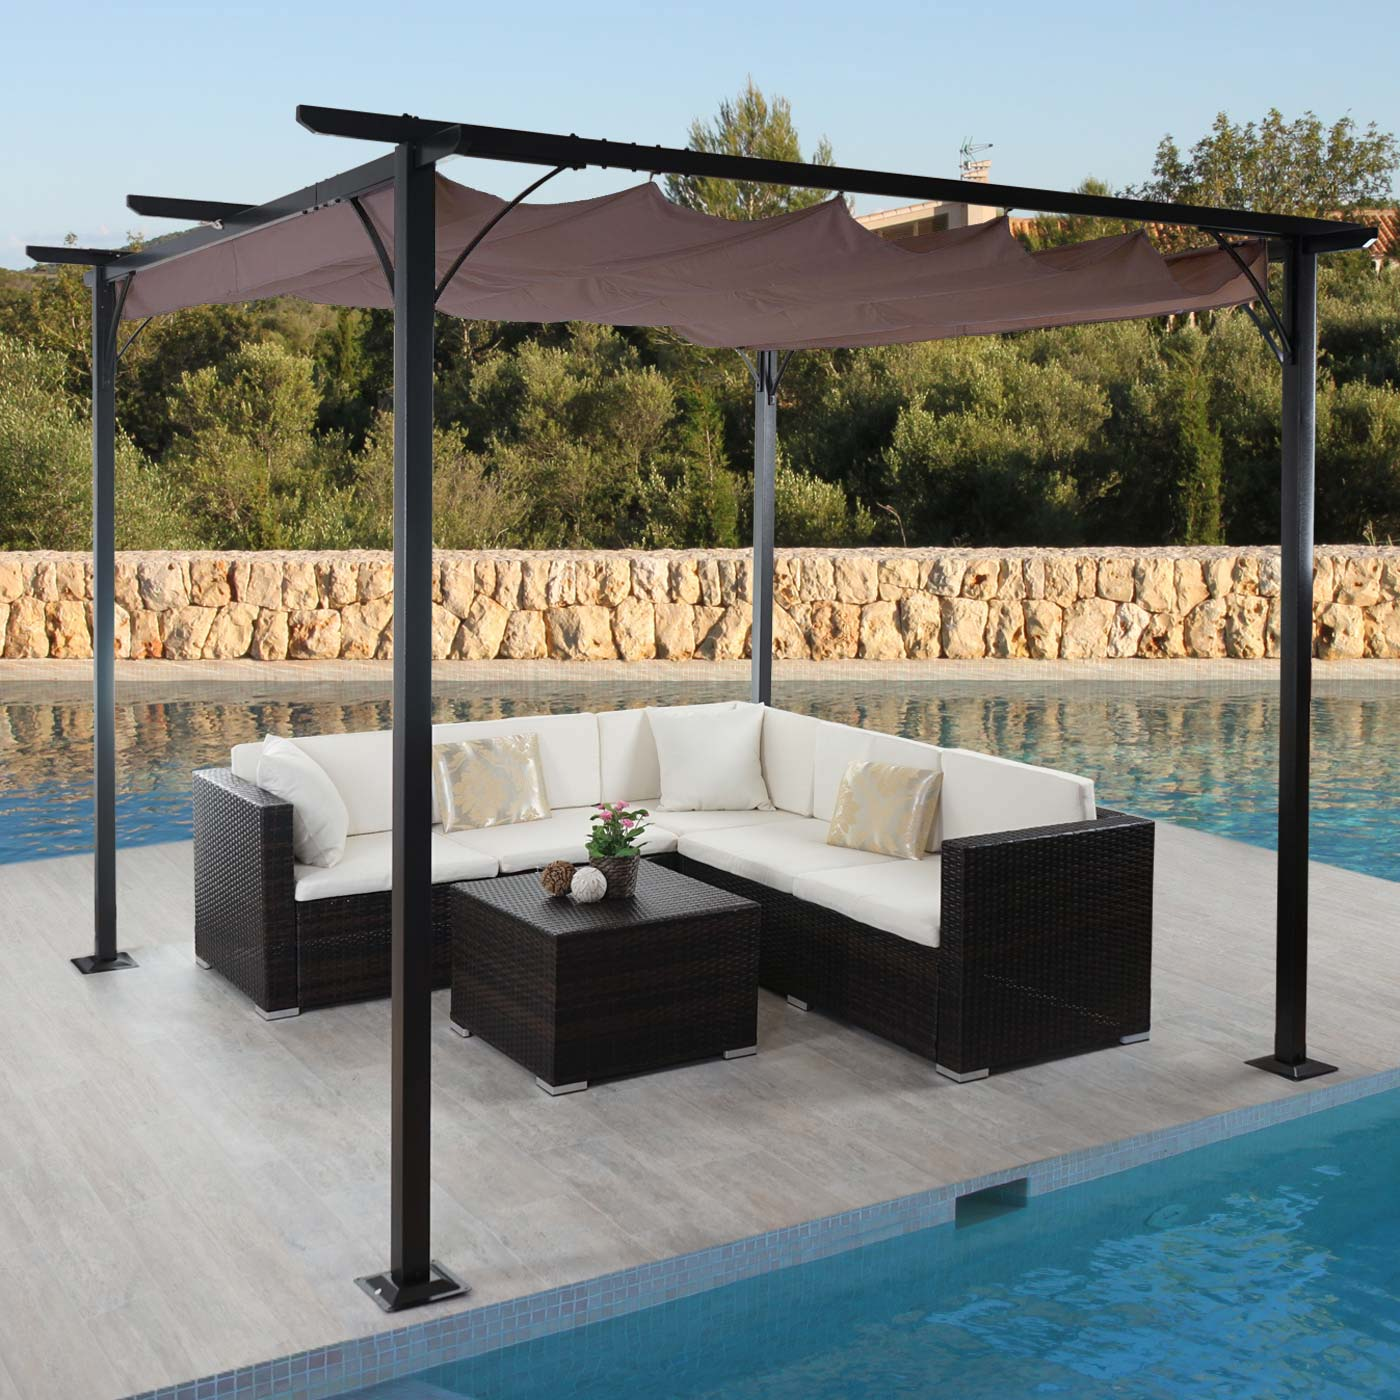 pergola beja garten pavillon terrassen berdachung. Black Bedroom Furniture Sets. Home Design Ideas